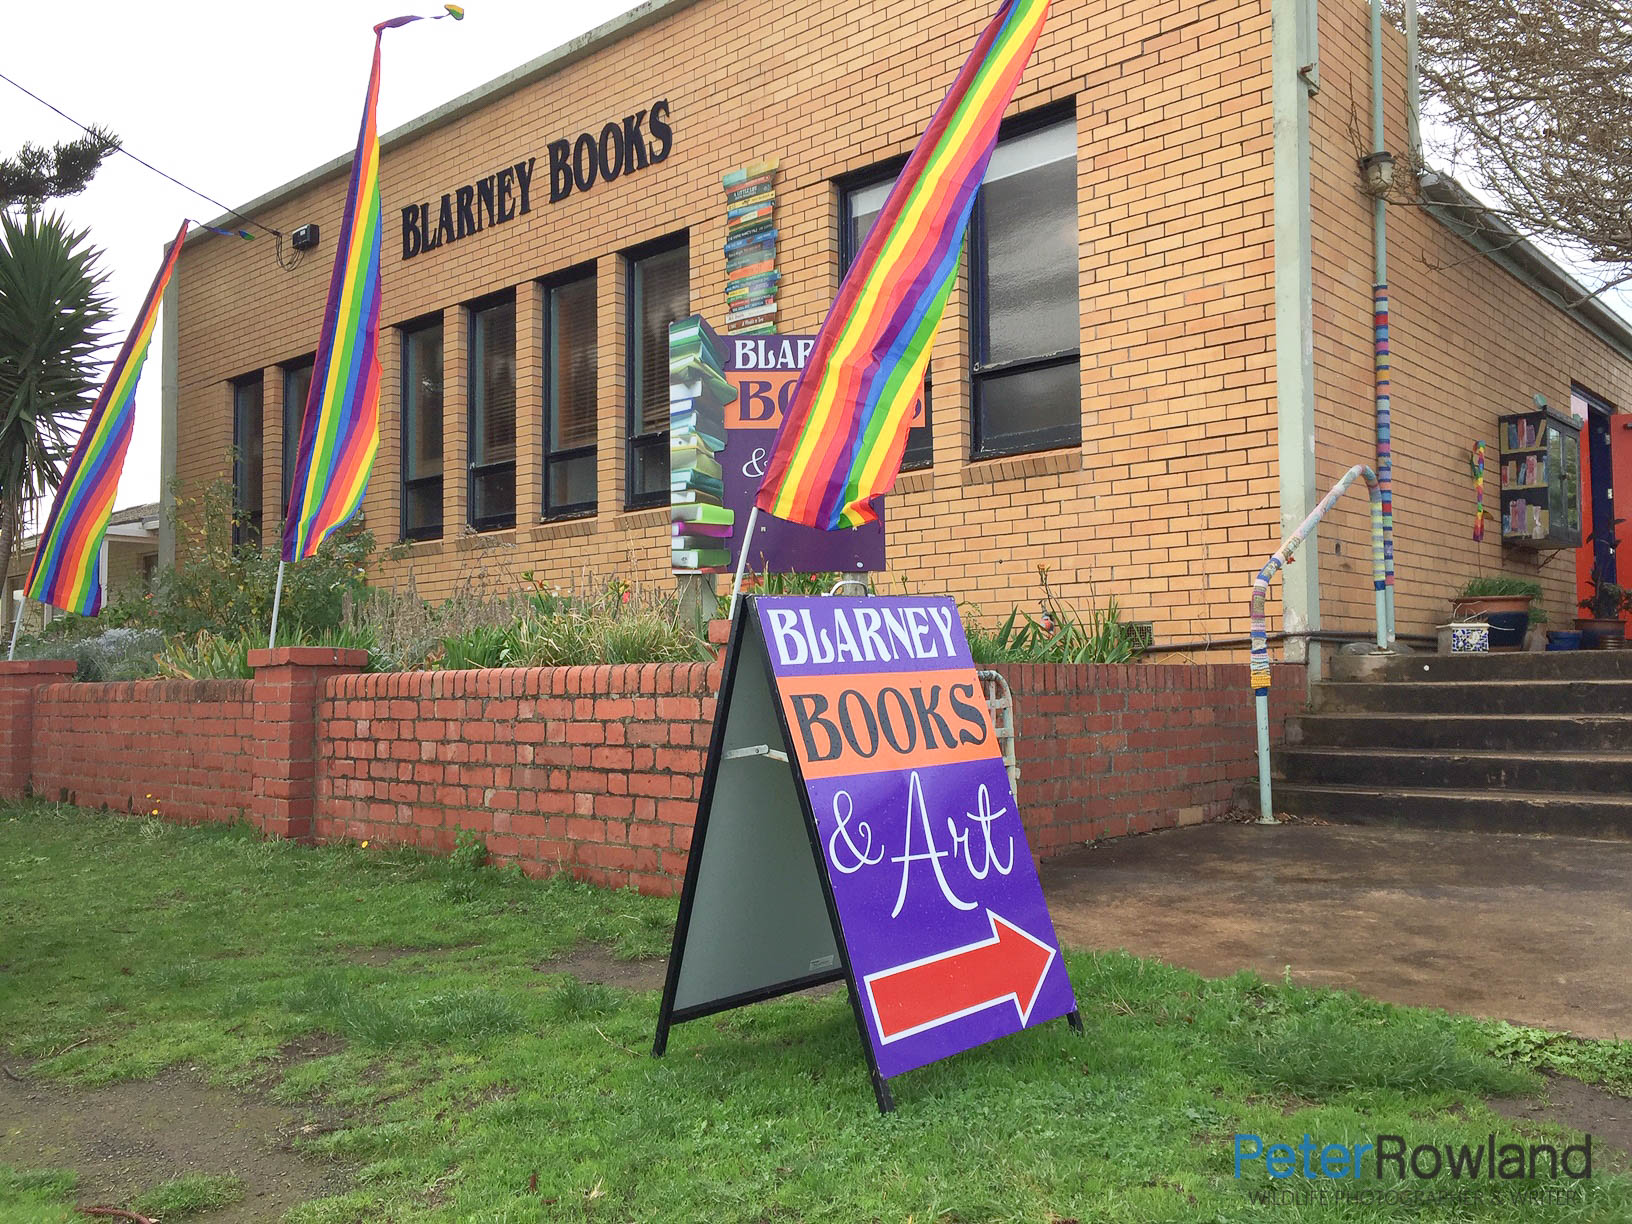 Sign in fornt of Blarney Books and Art Building